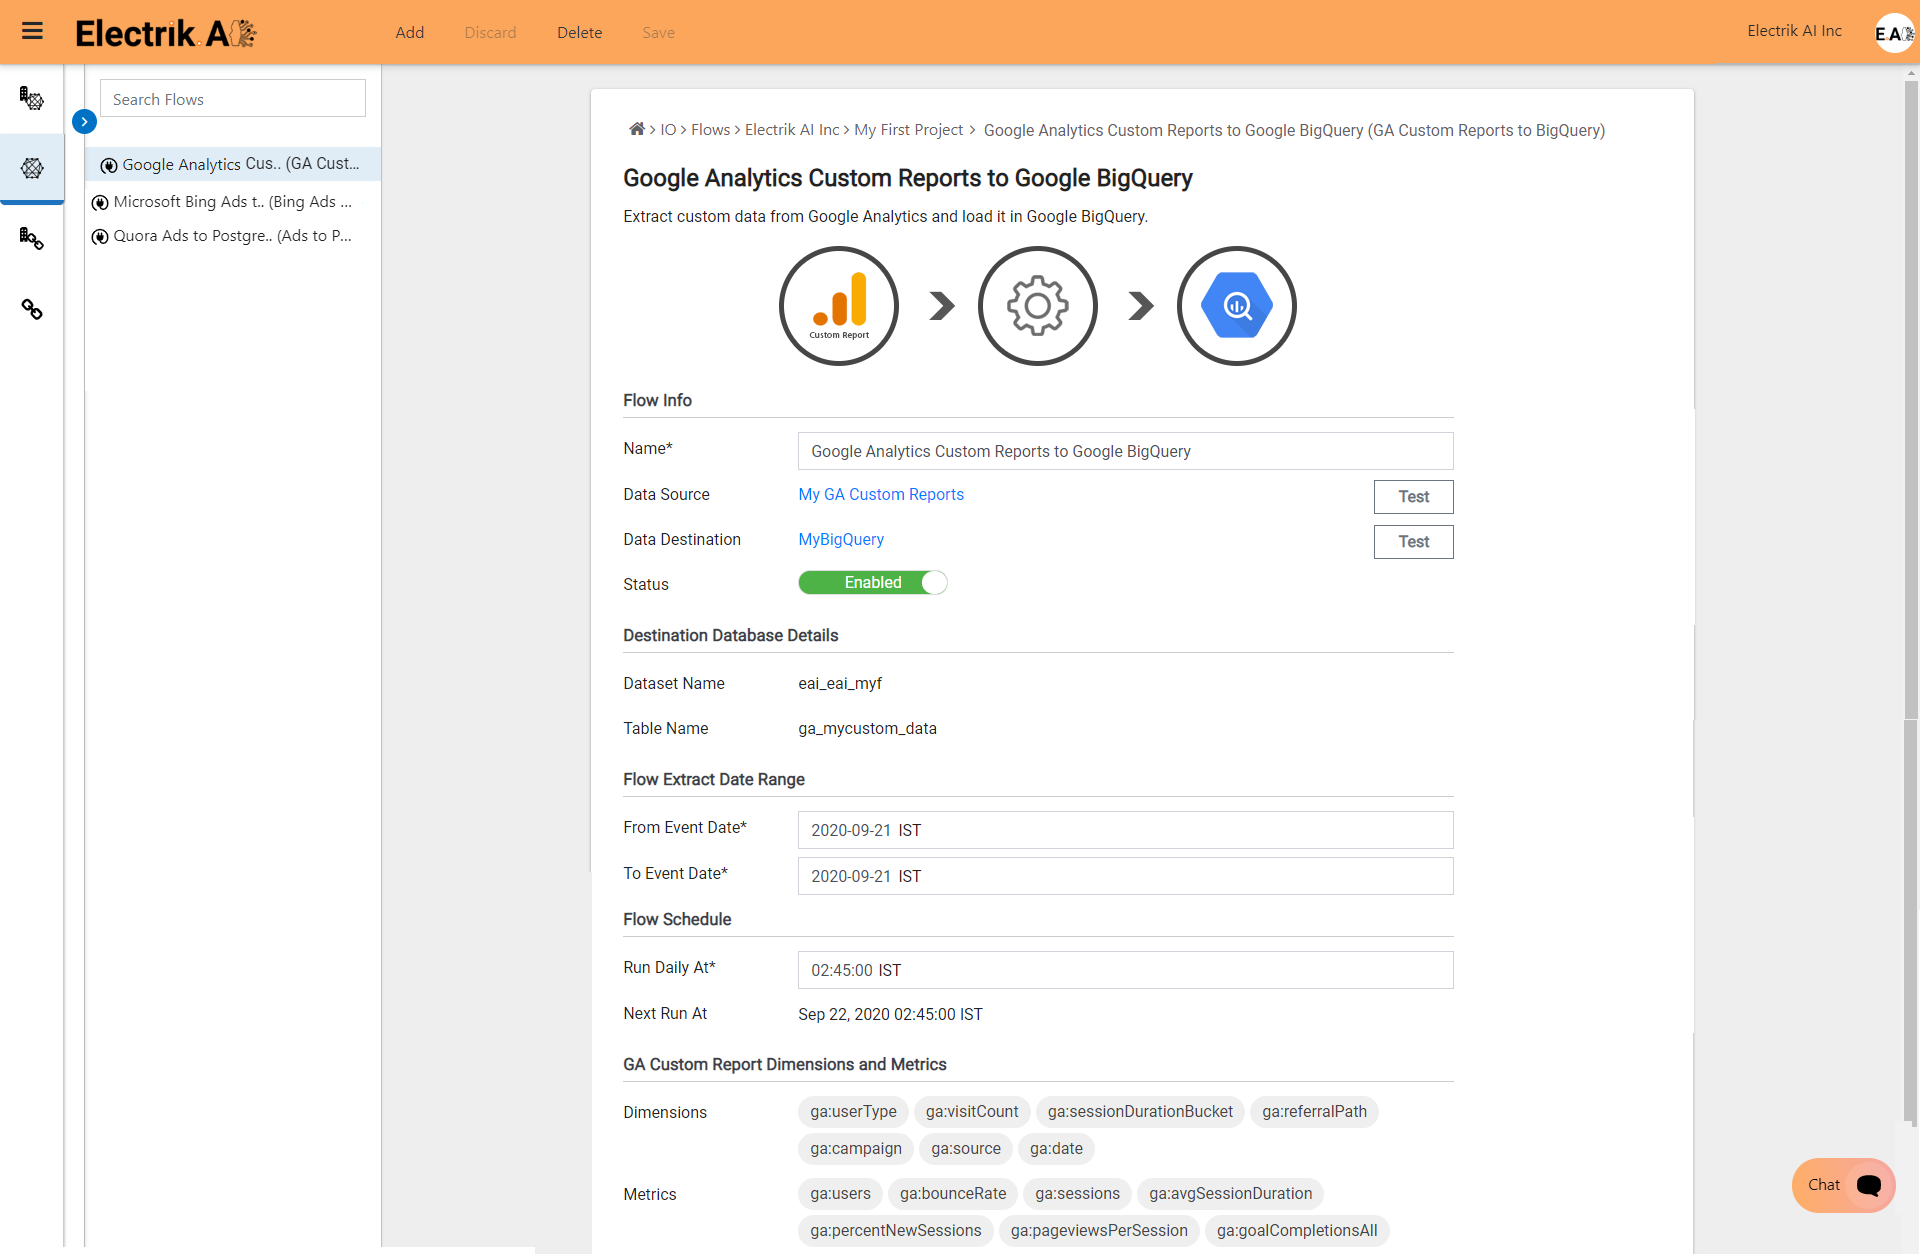 You have now successfully setup Google Analytics Custom Report-ElectrikAI